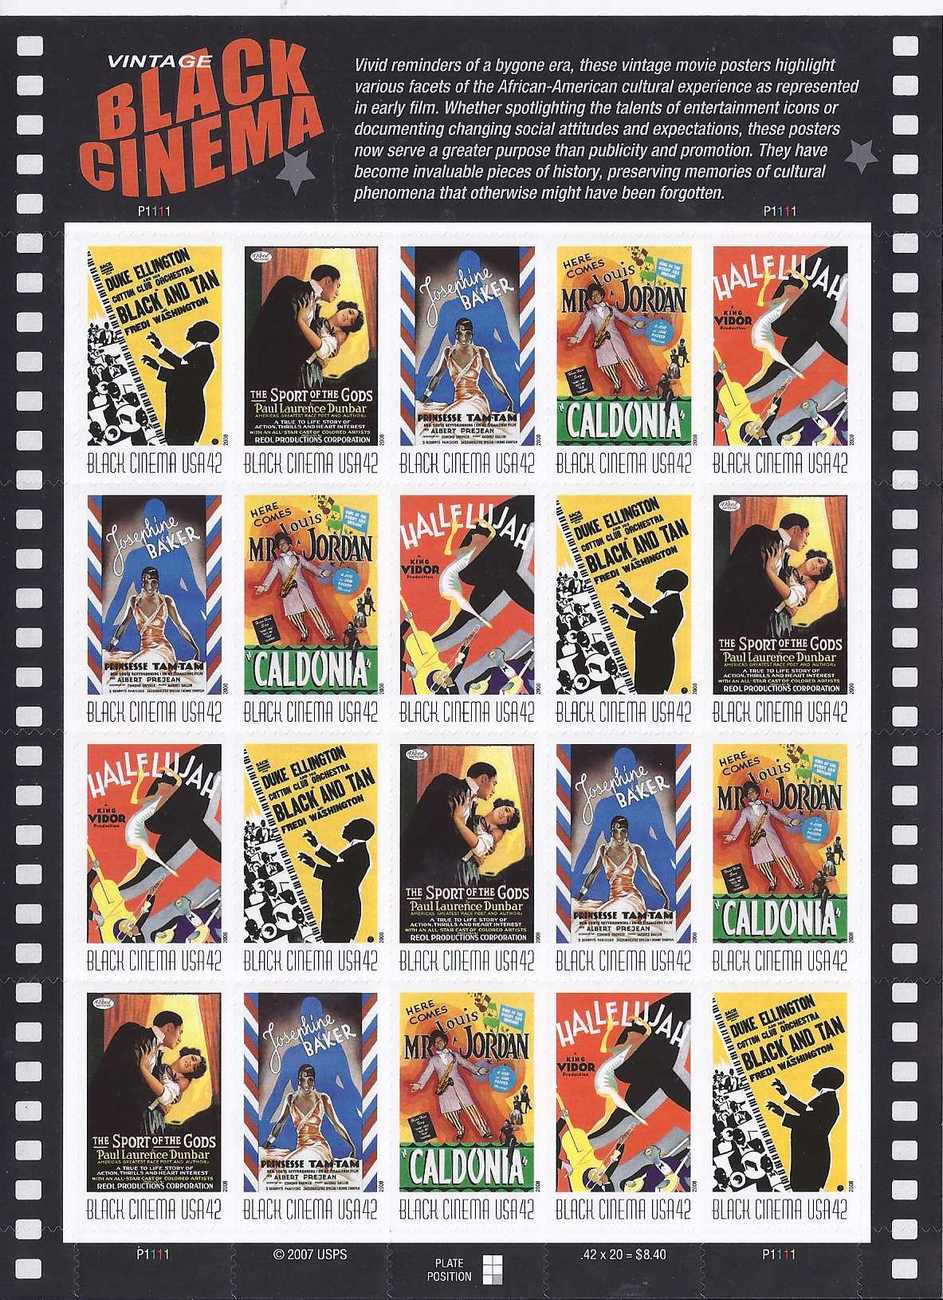 Stamps black cinema